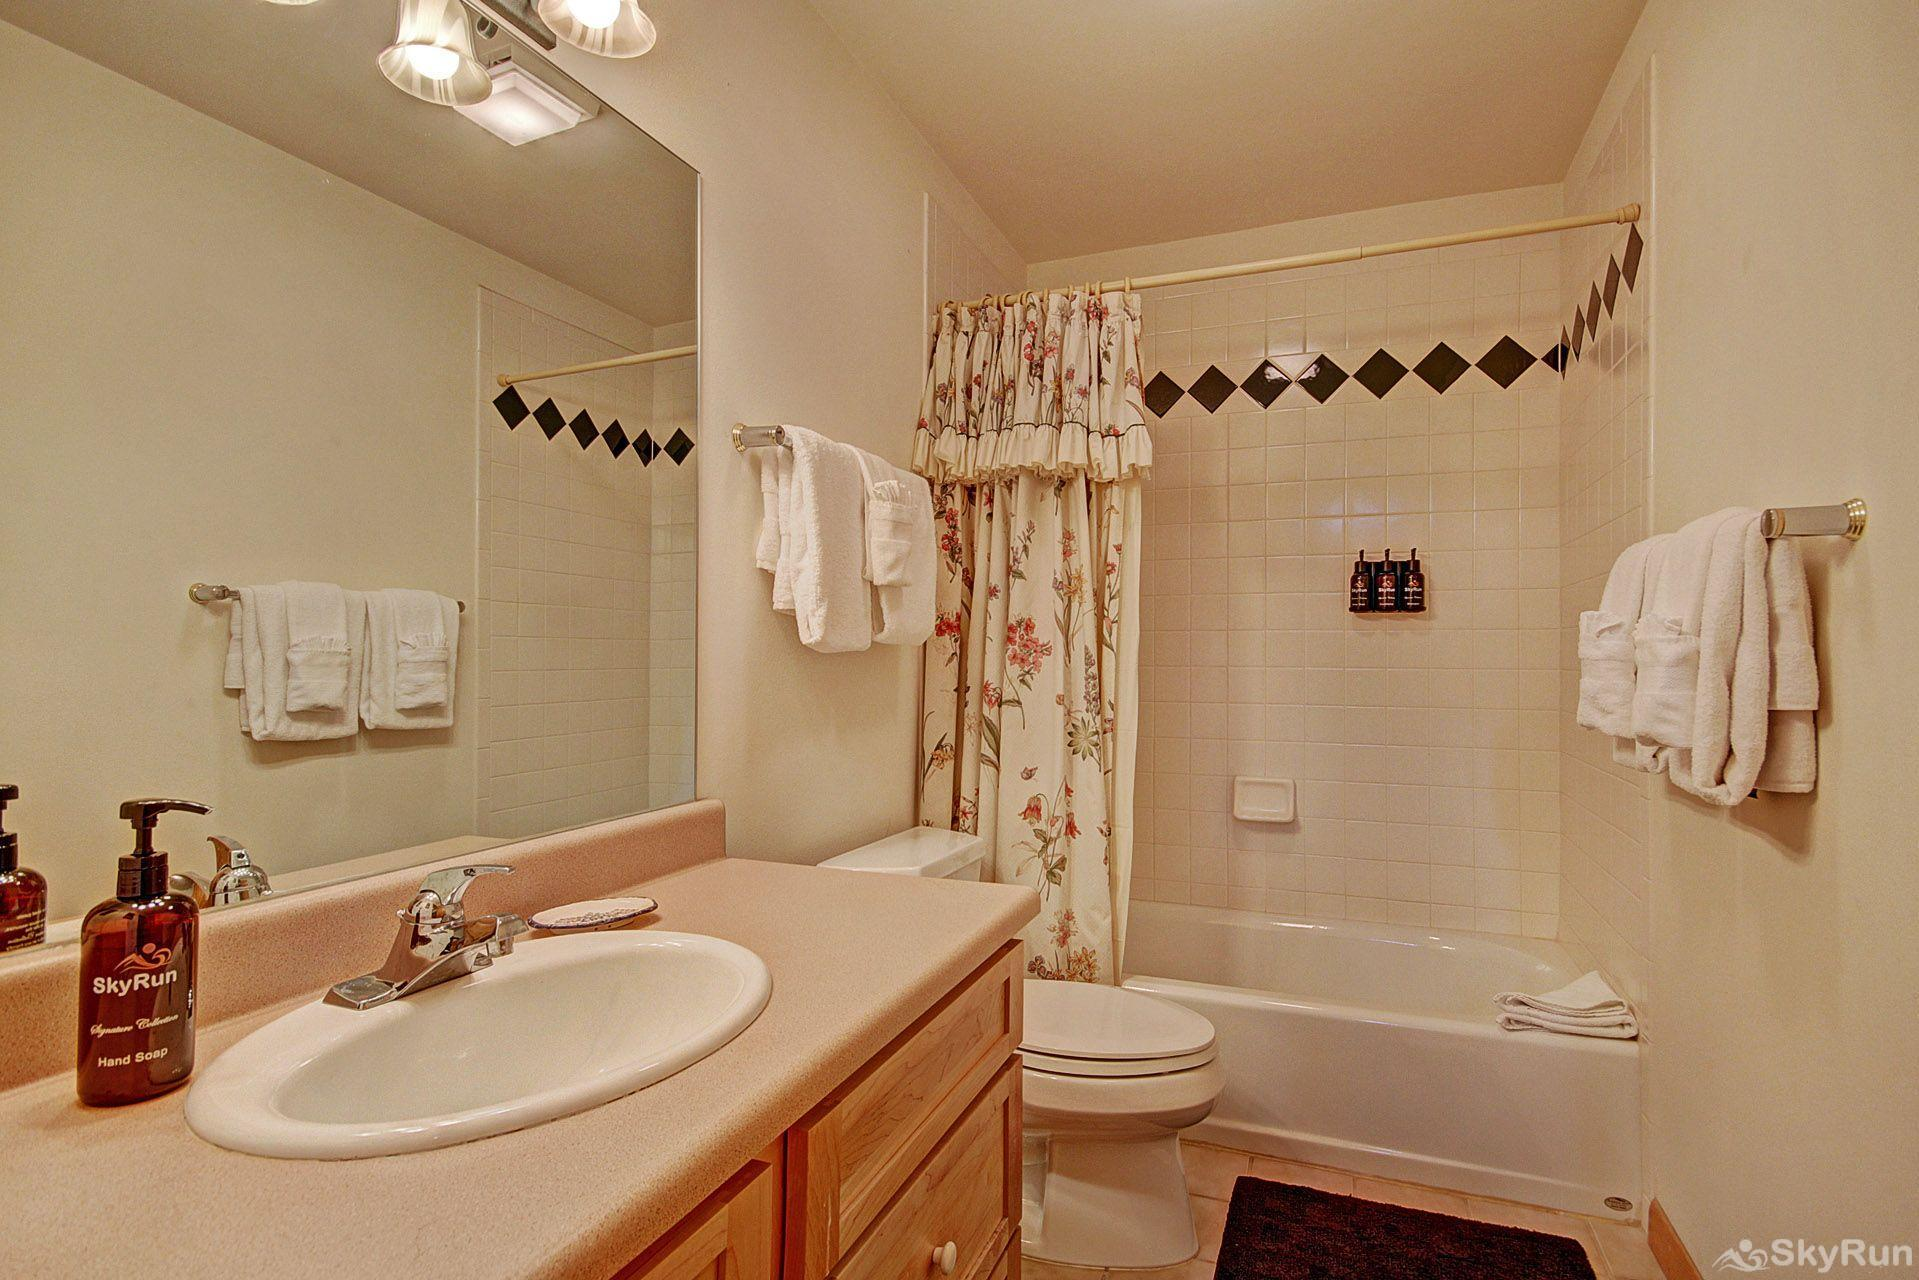 Sauterne Sanctuary 3BR 3BA Guest Bathroom